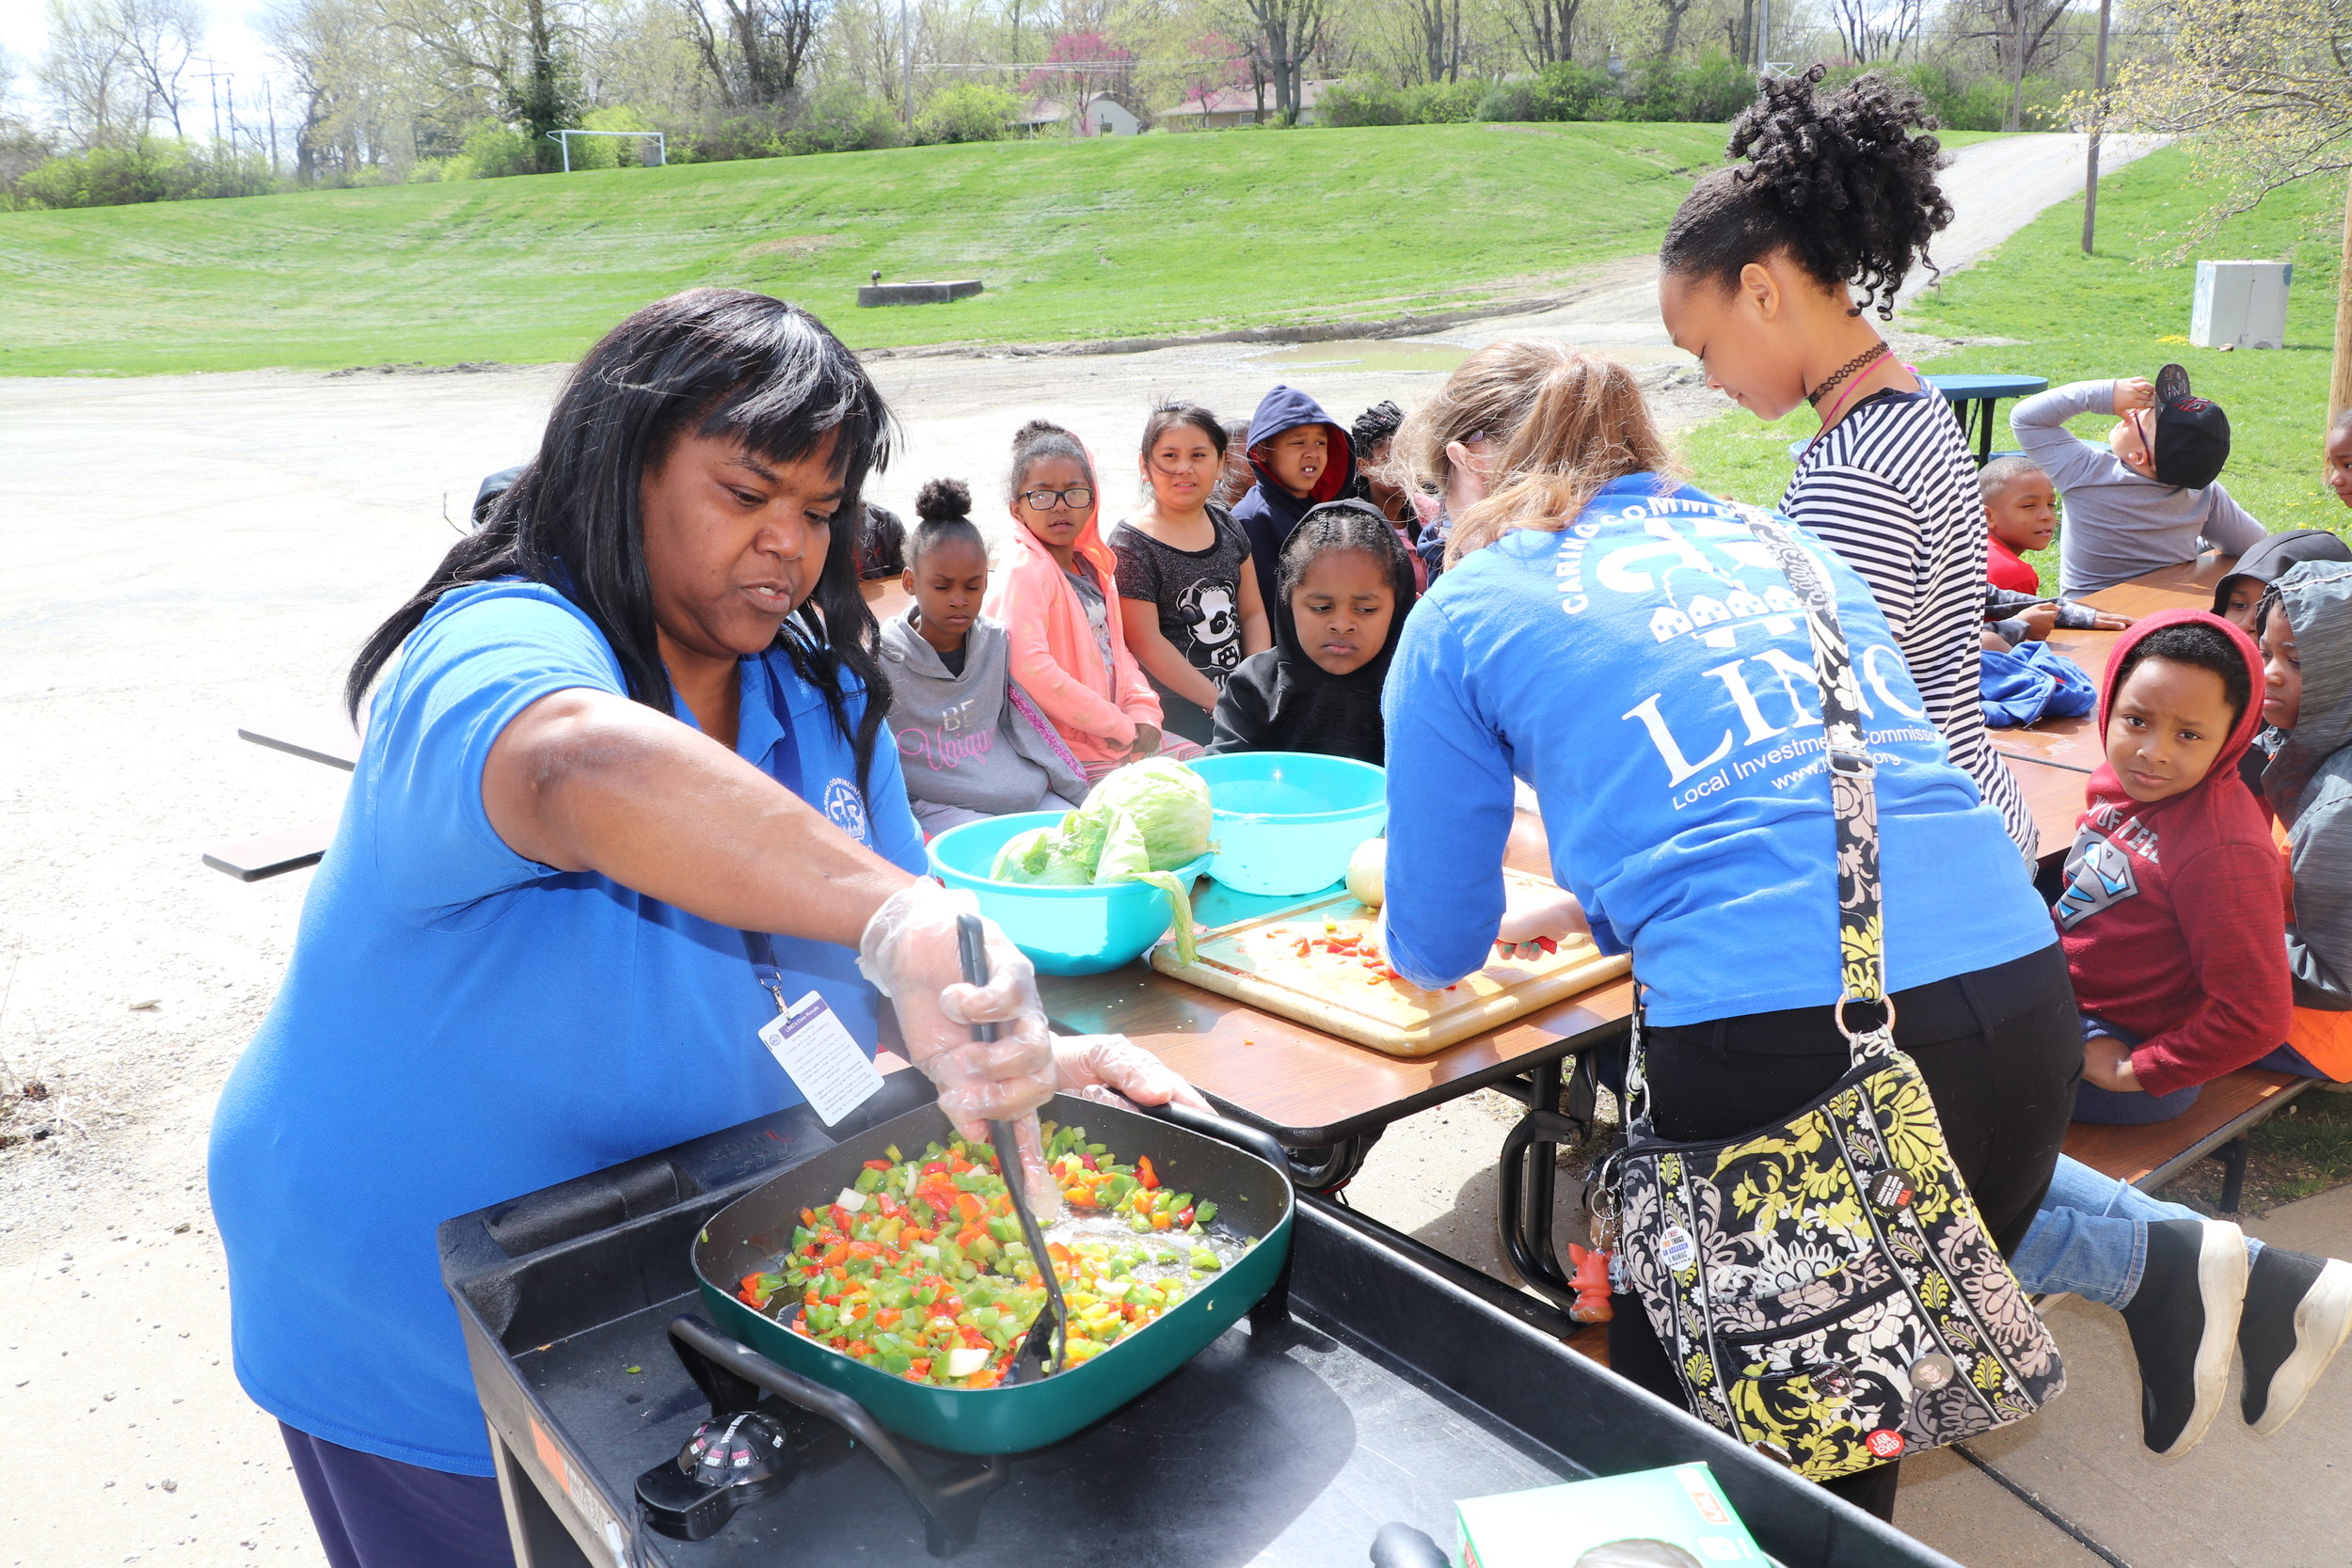 LINC Staff at Johnson Elementary prepare a healthy snack using vegetables from the school garden.